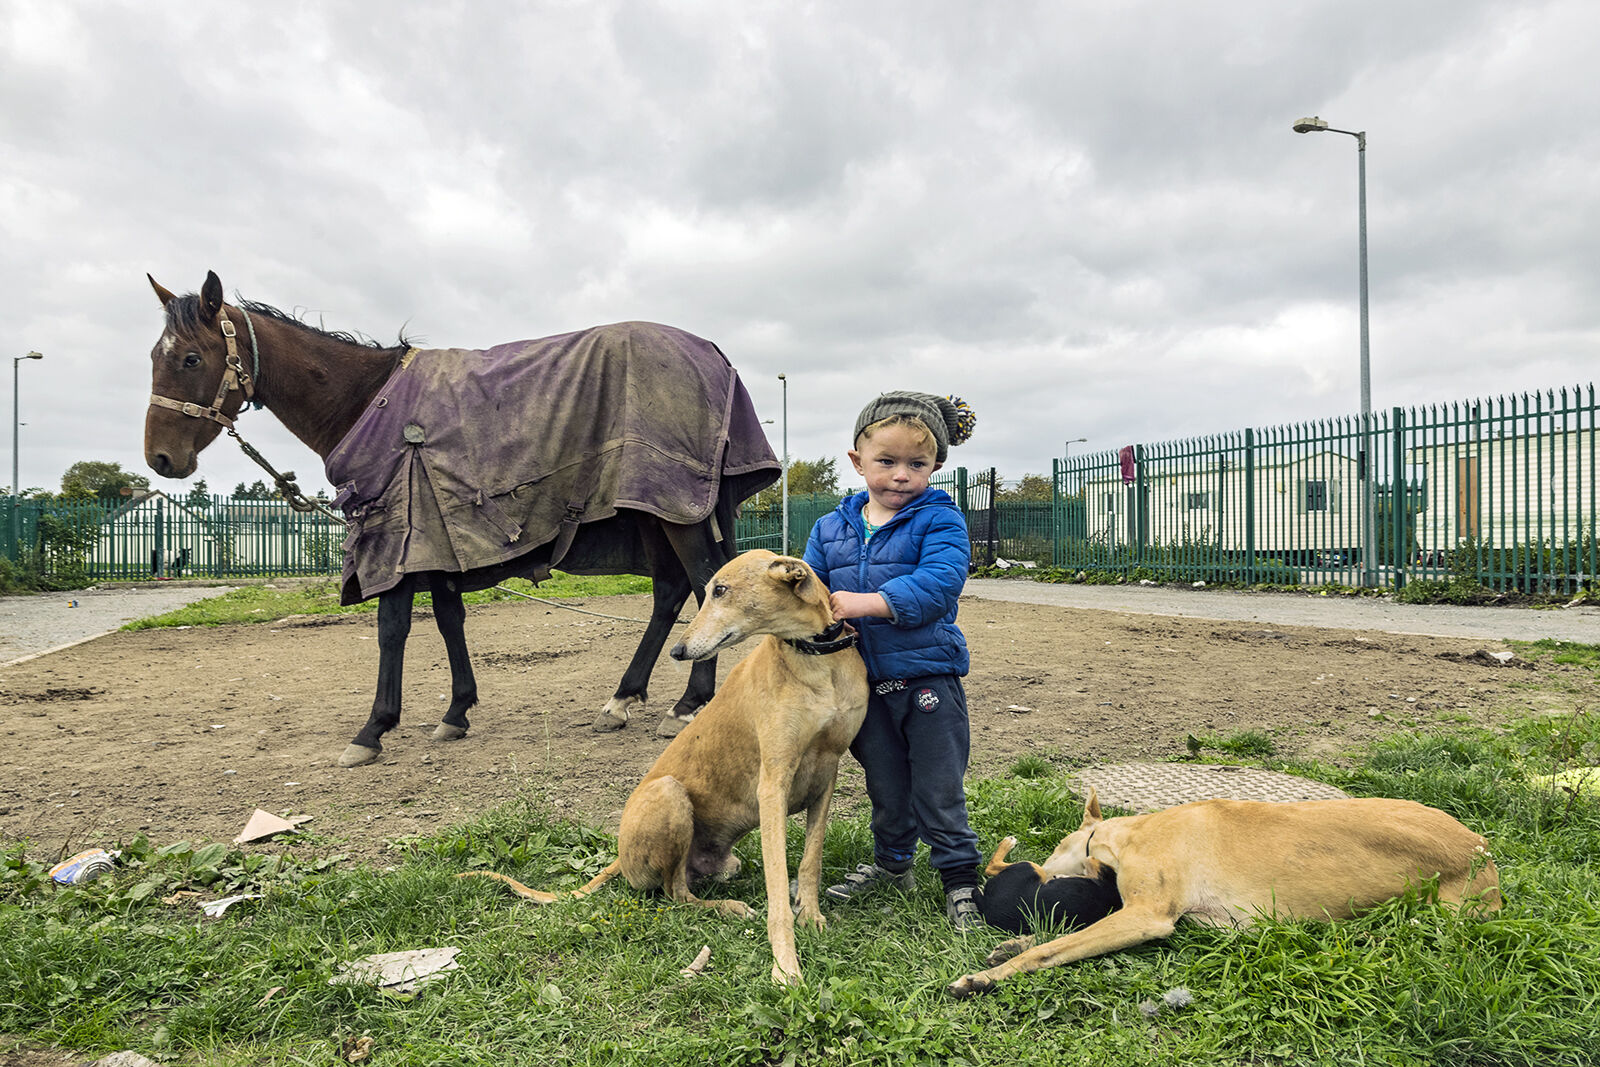 Michael with Dogs and Horse, Tipperary, Ireland 2018